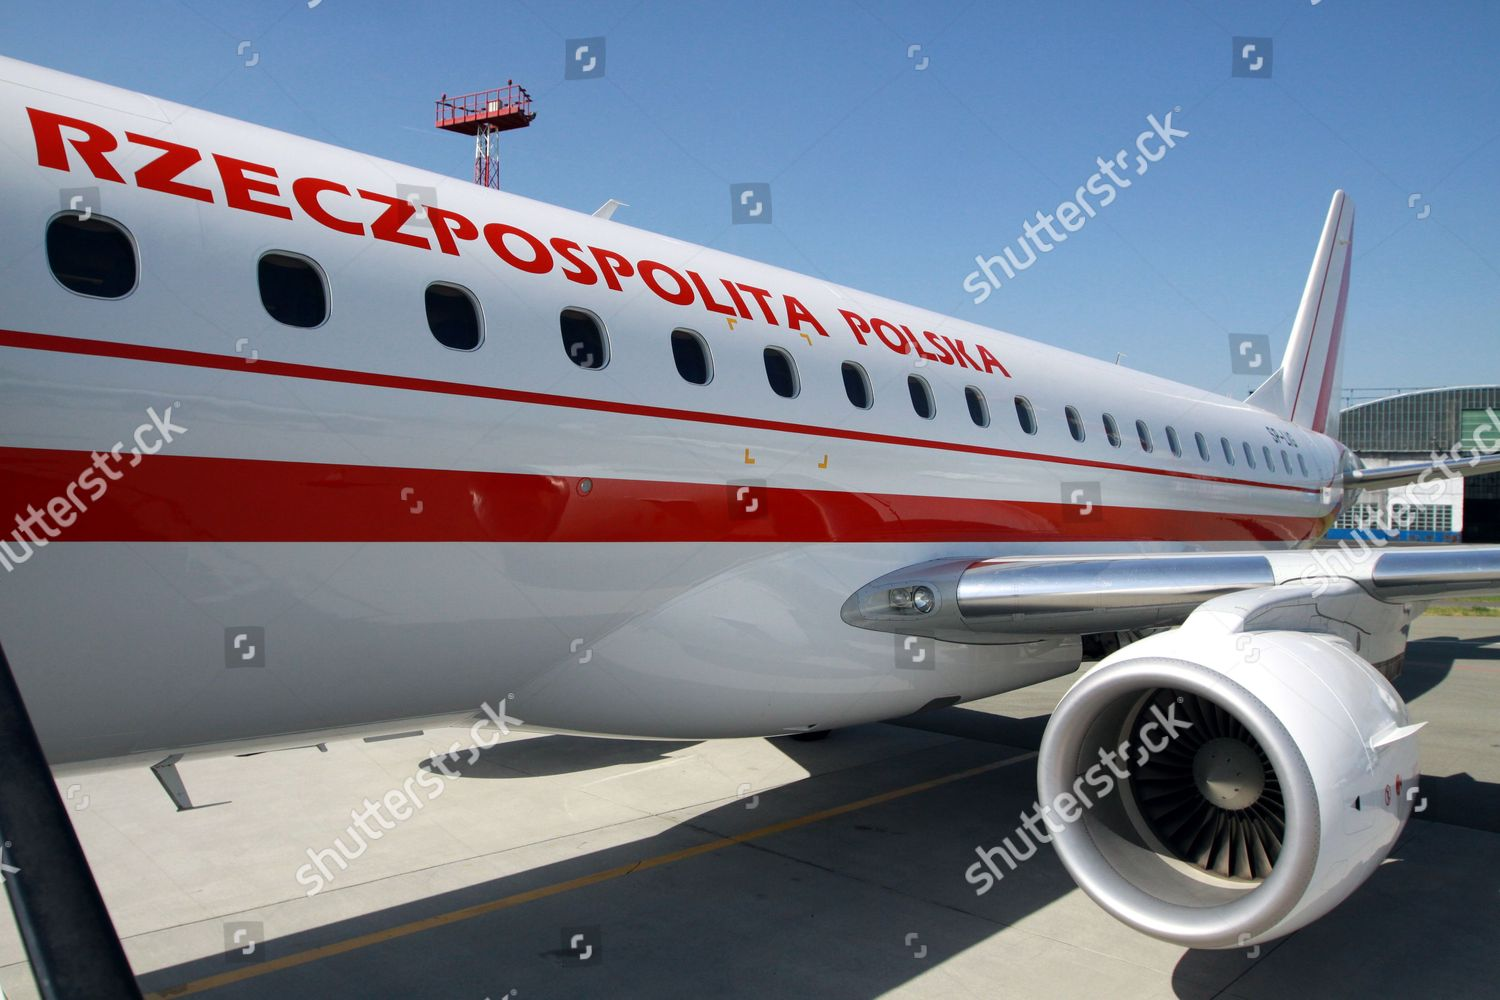 New Polish Governmental Plane Embraer 175 Has Editorial